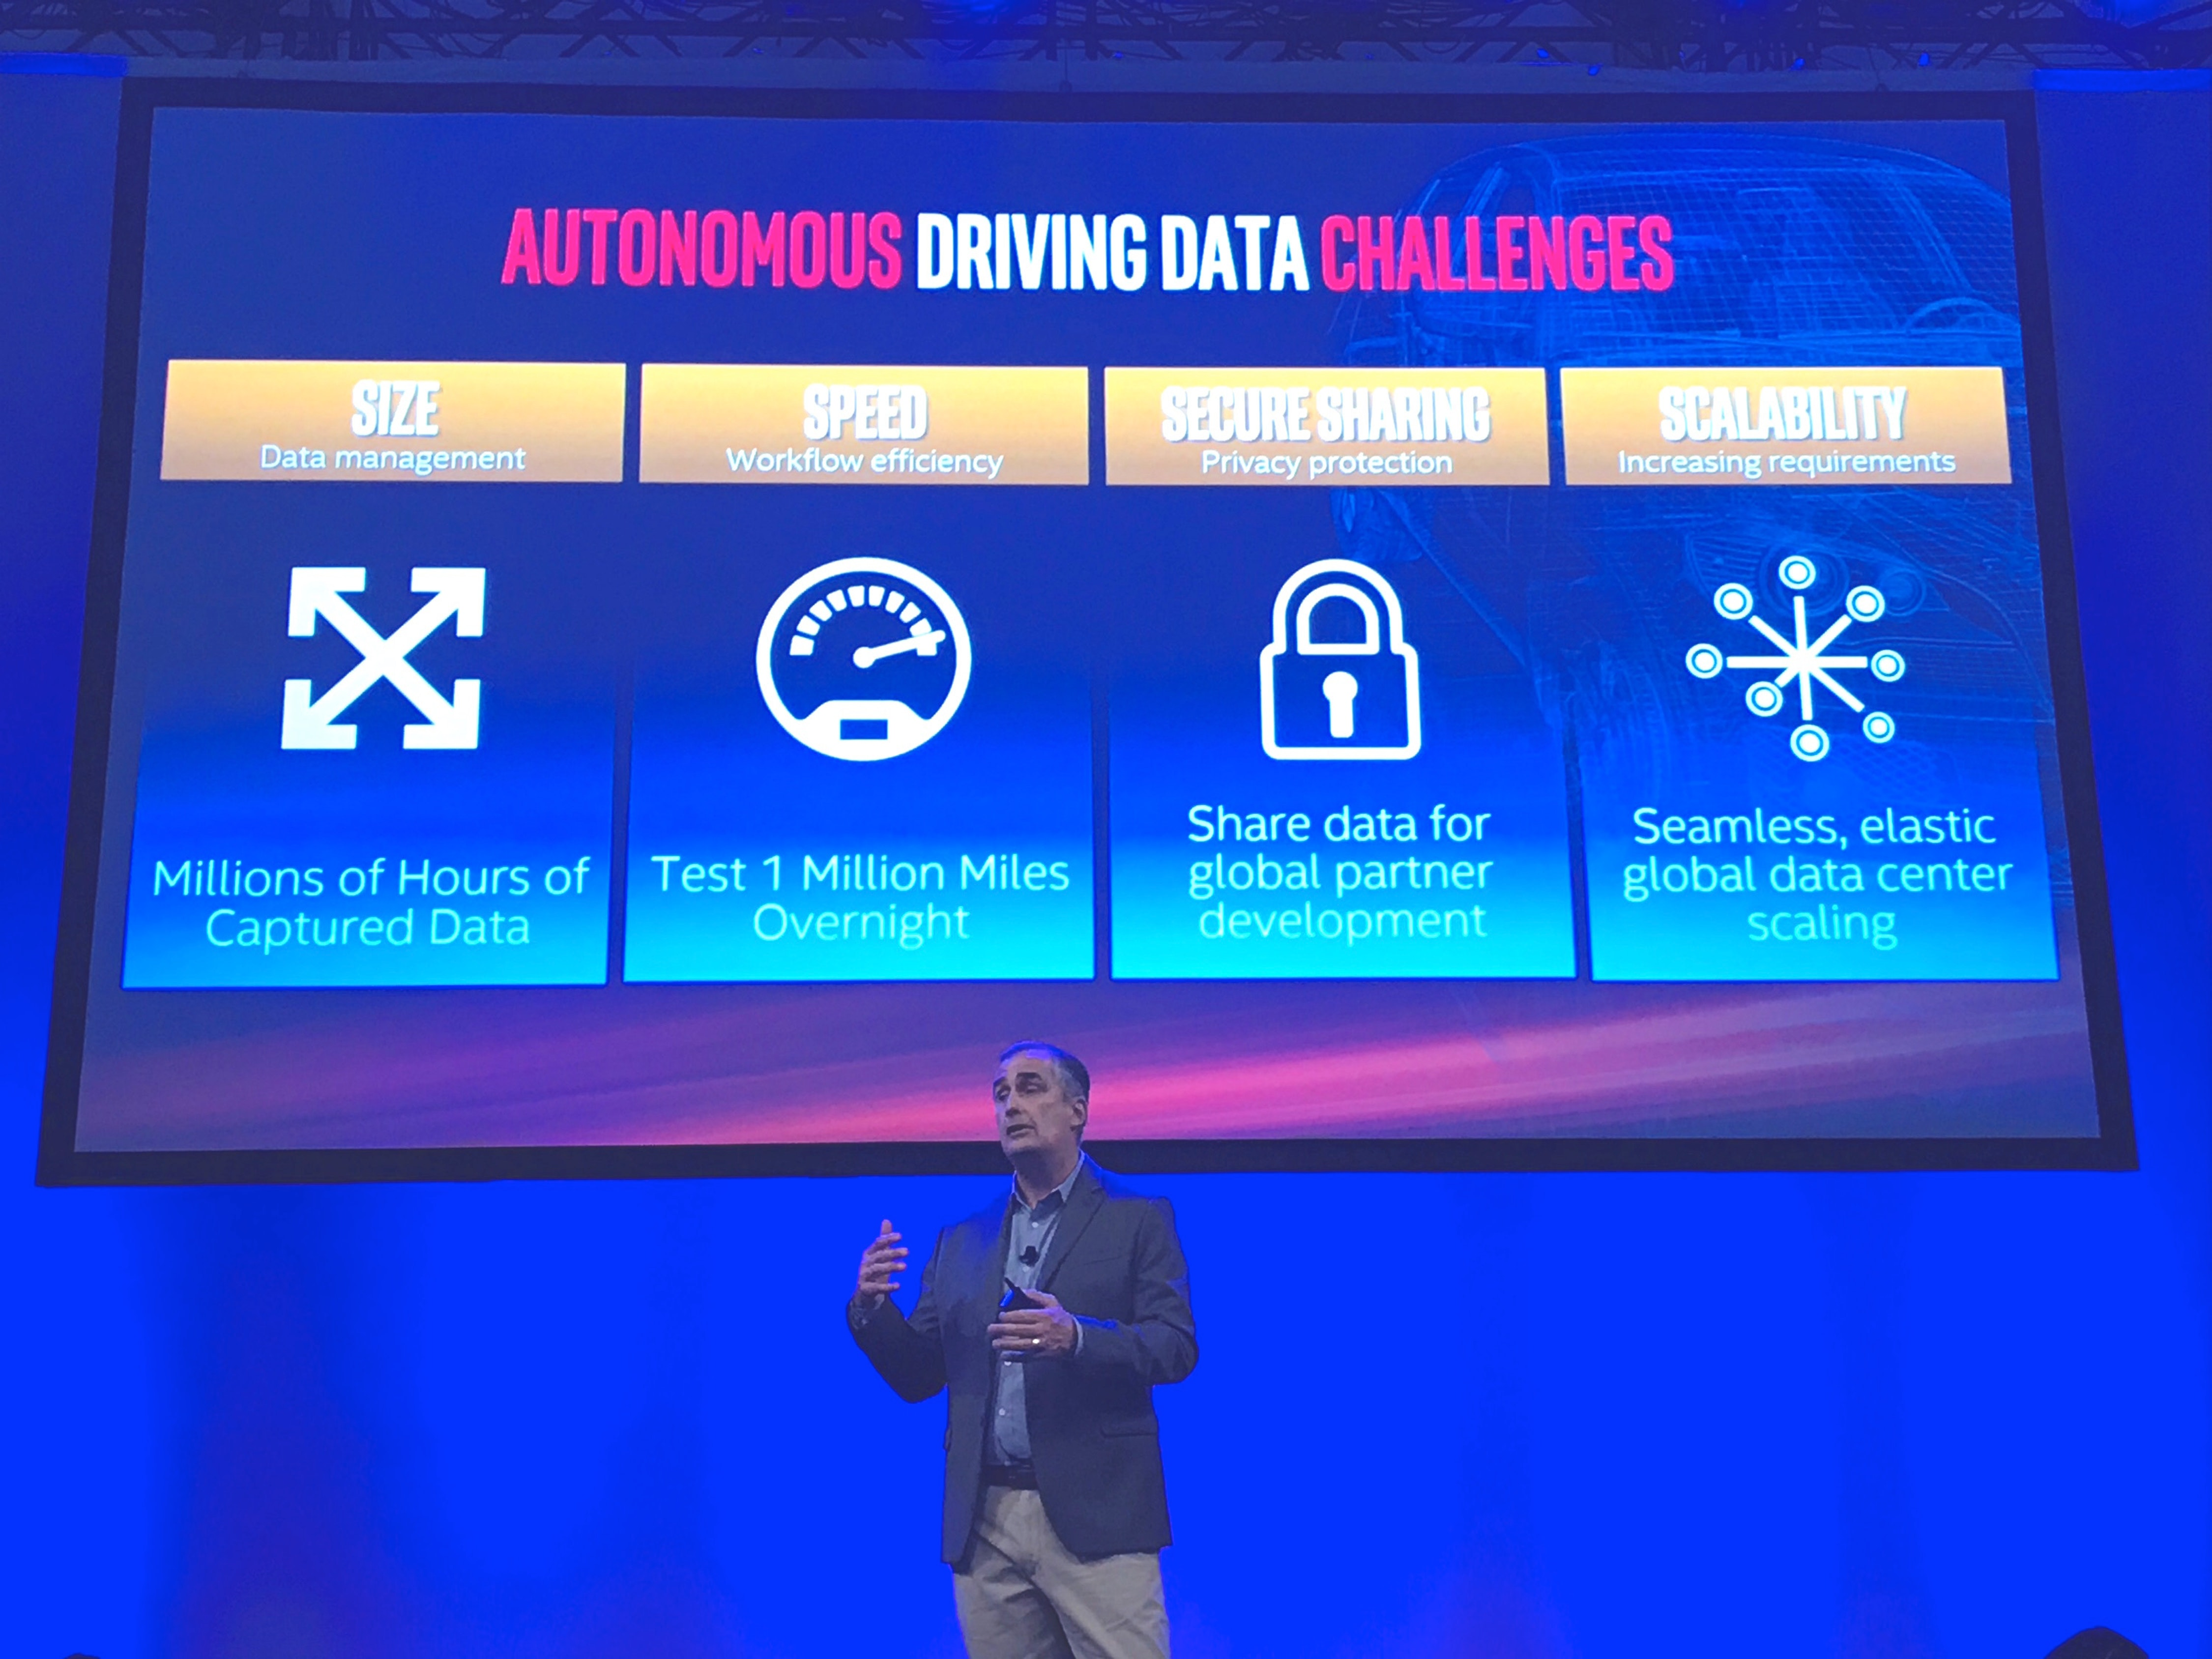 Autonomous driving's four data roadblocks, as presented by Intel CEO Krzanich.